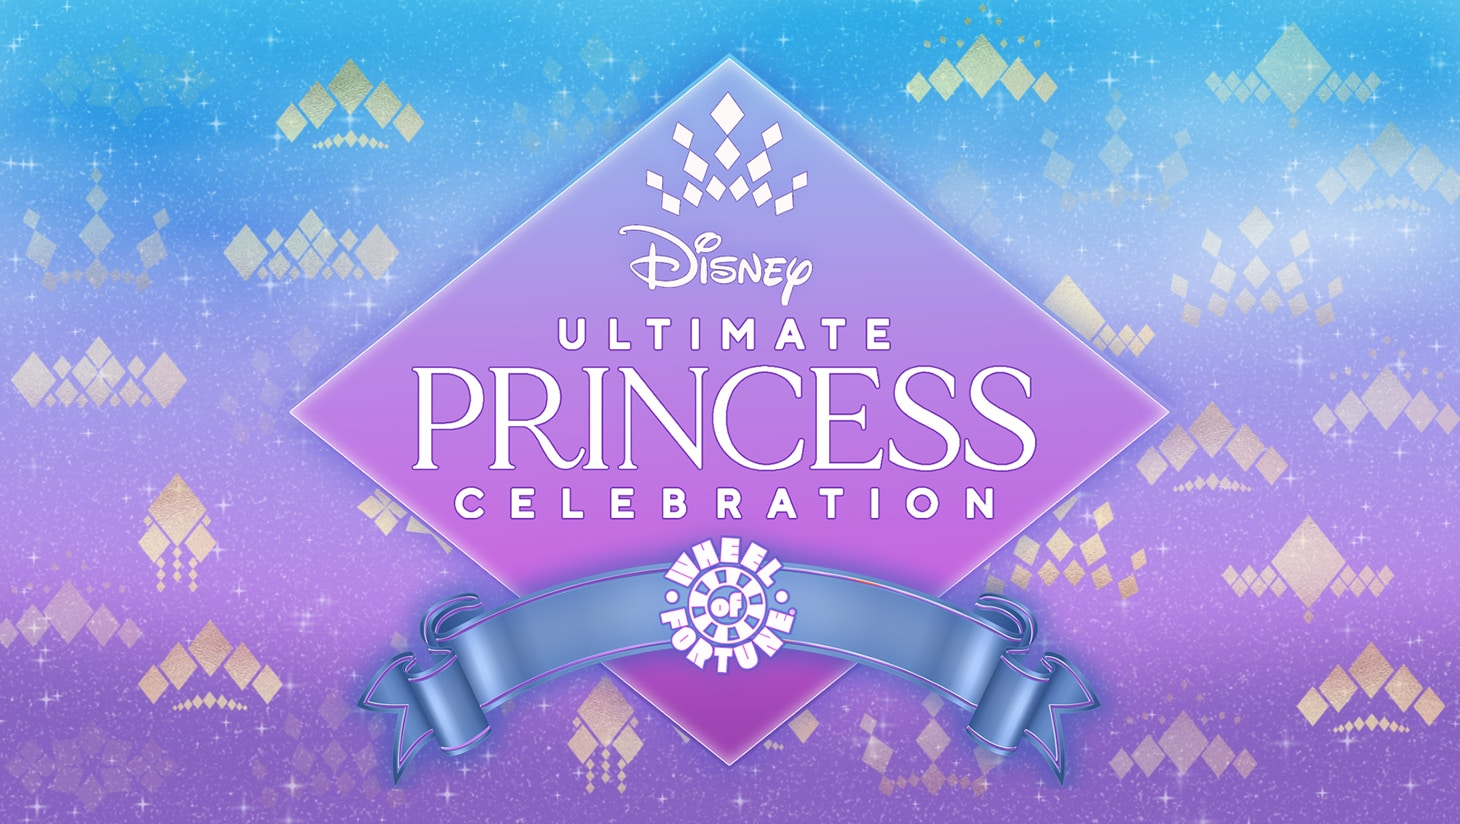 The Ultimate Disney Princess Celebration Wheel of Fortune graphic